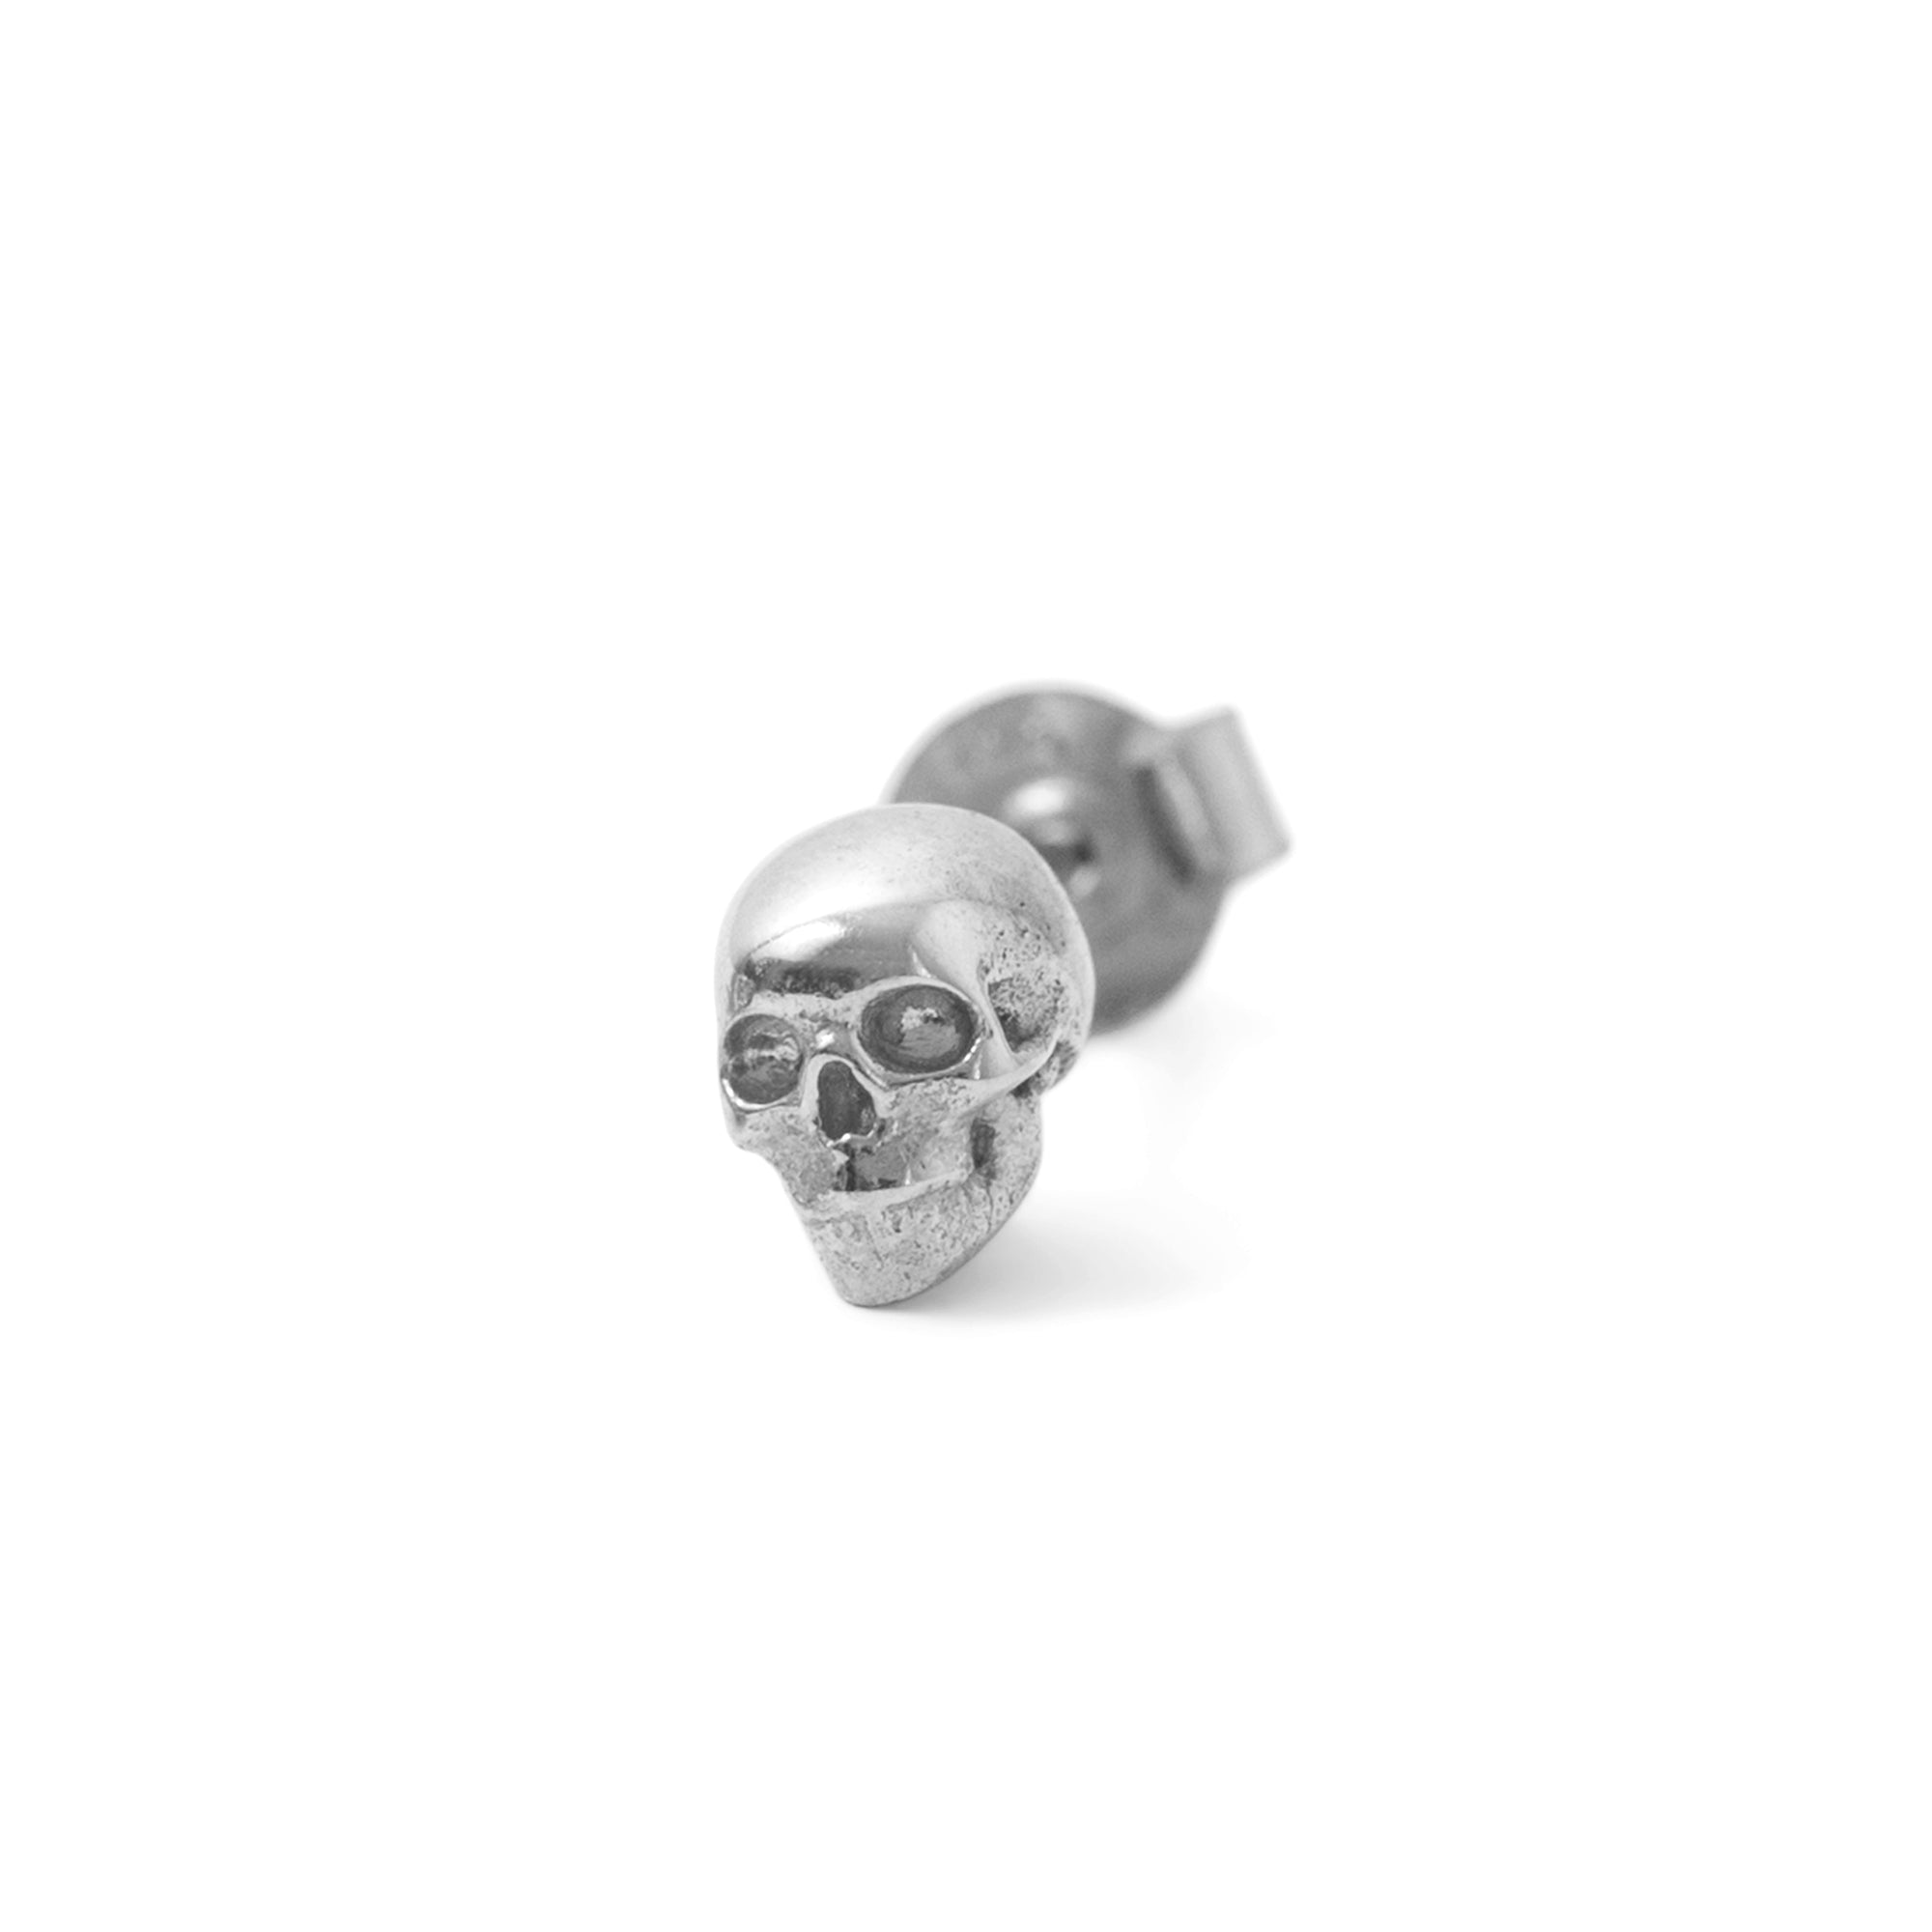 The Small Skull Stud in Silver (Single)